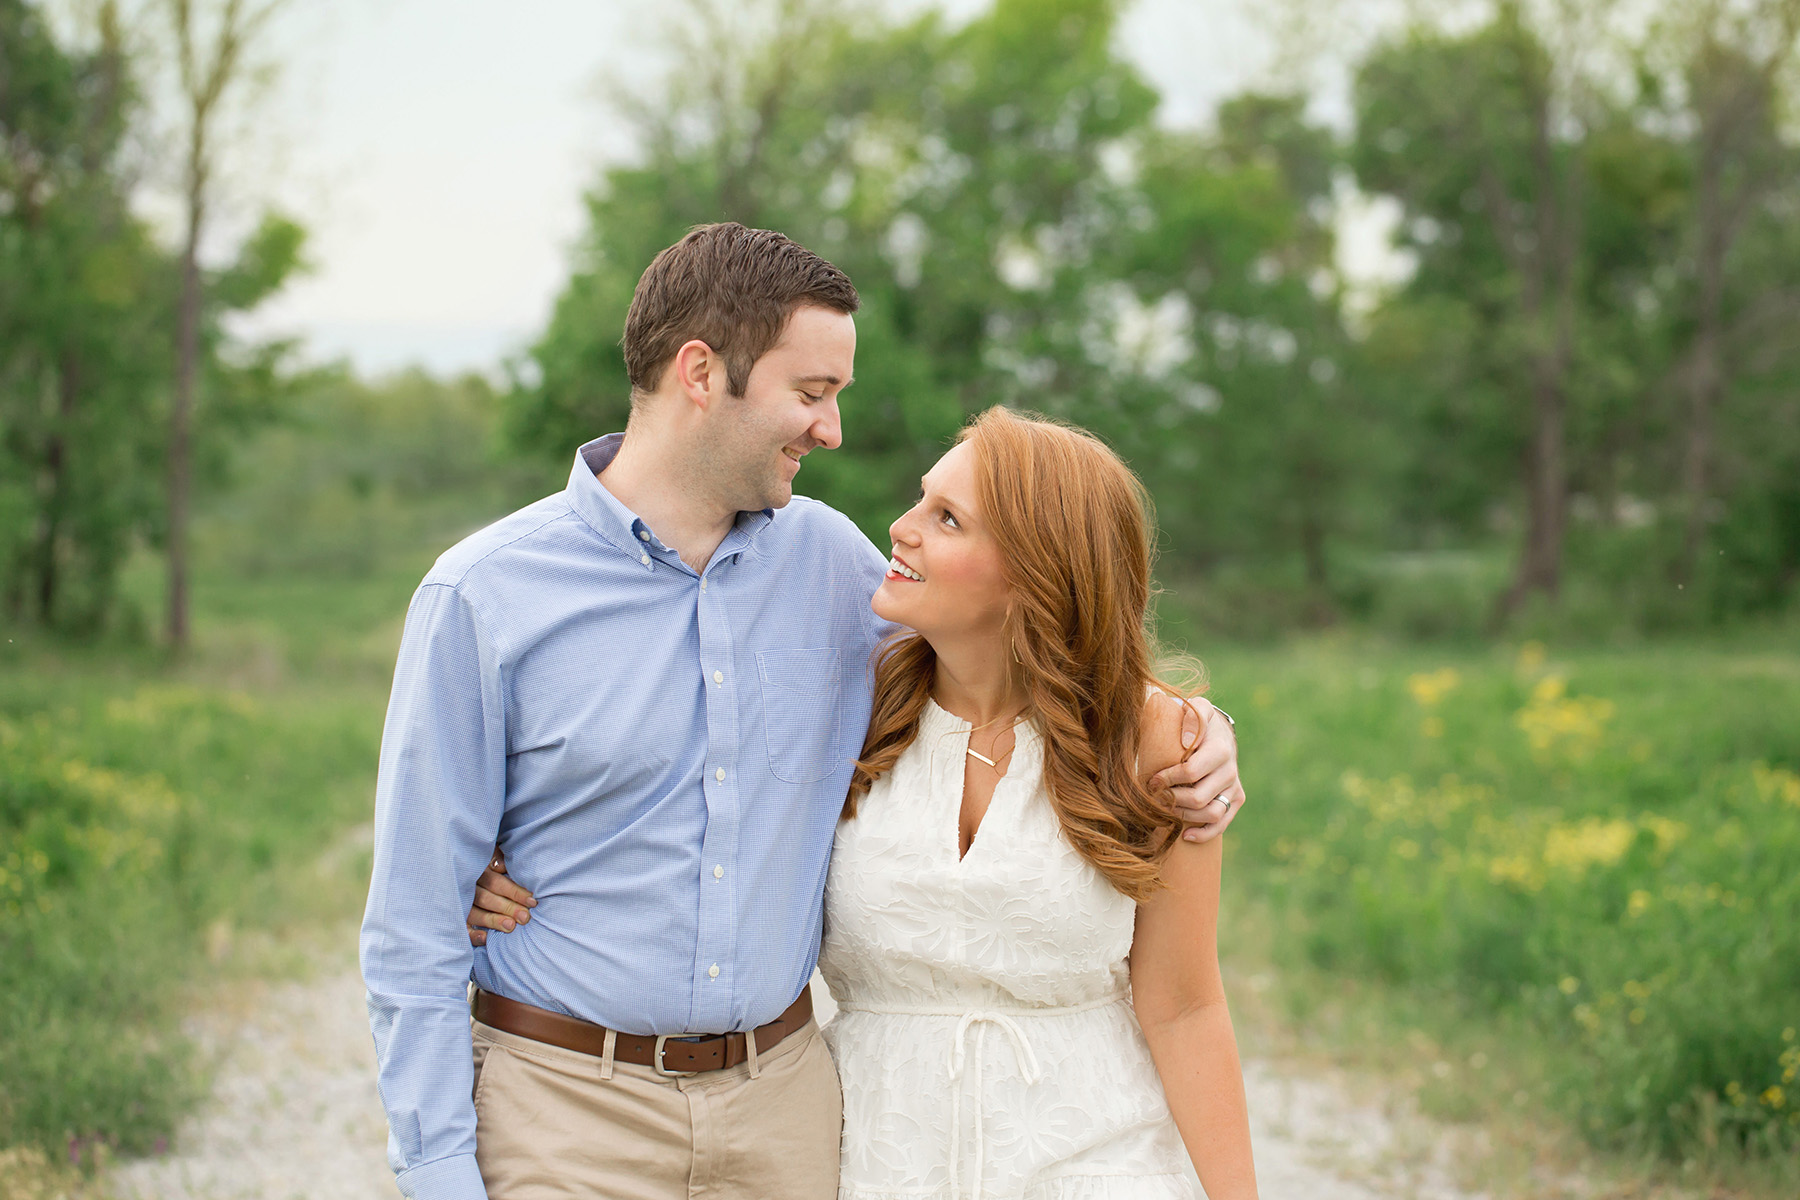 Louisville newborn photographer | julie brock photography | fun pregnancy announcement | louisville maternity photographer | he was surprised by his wife that she is pregnant.jpg